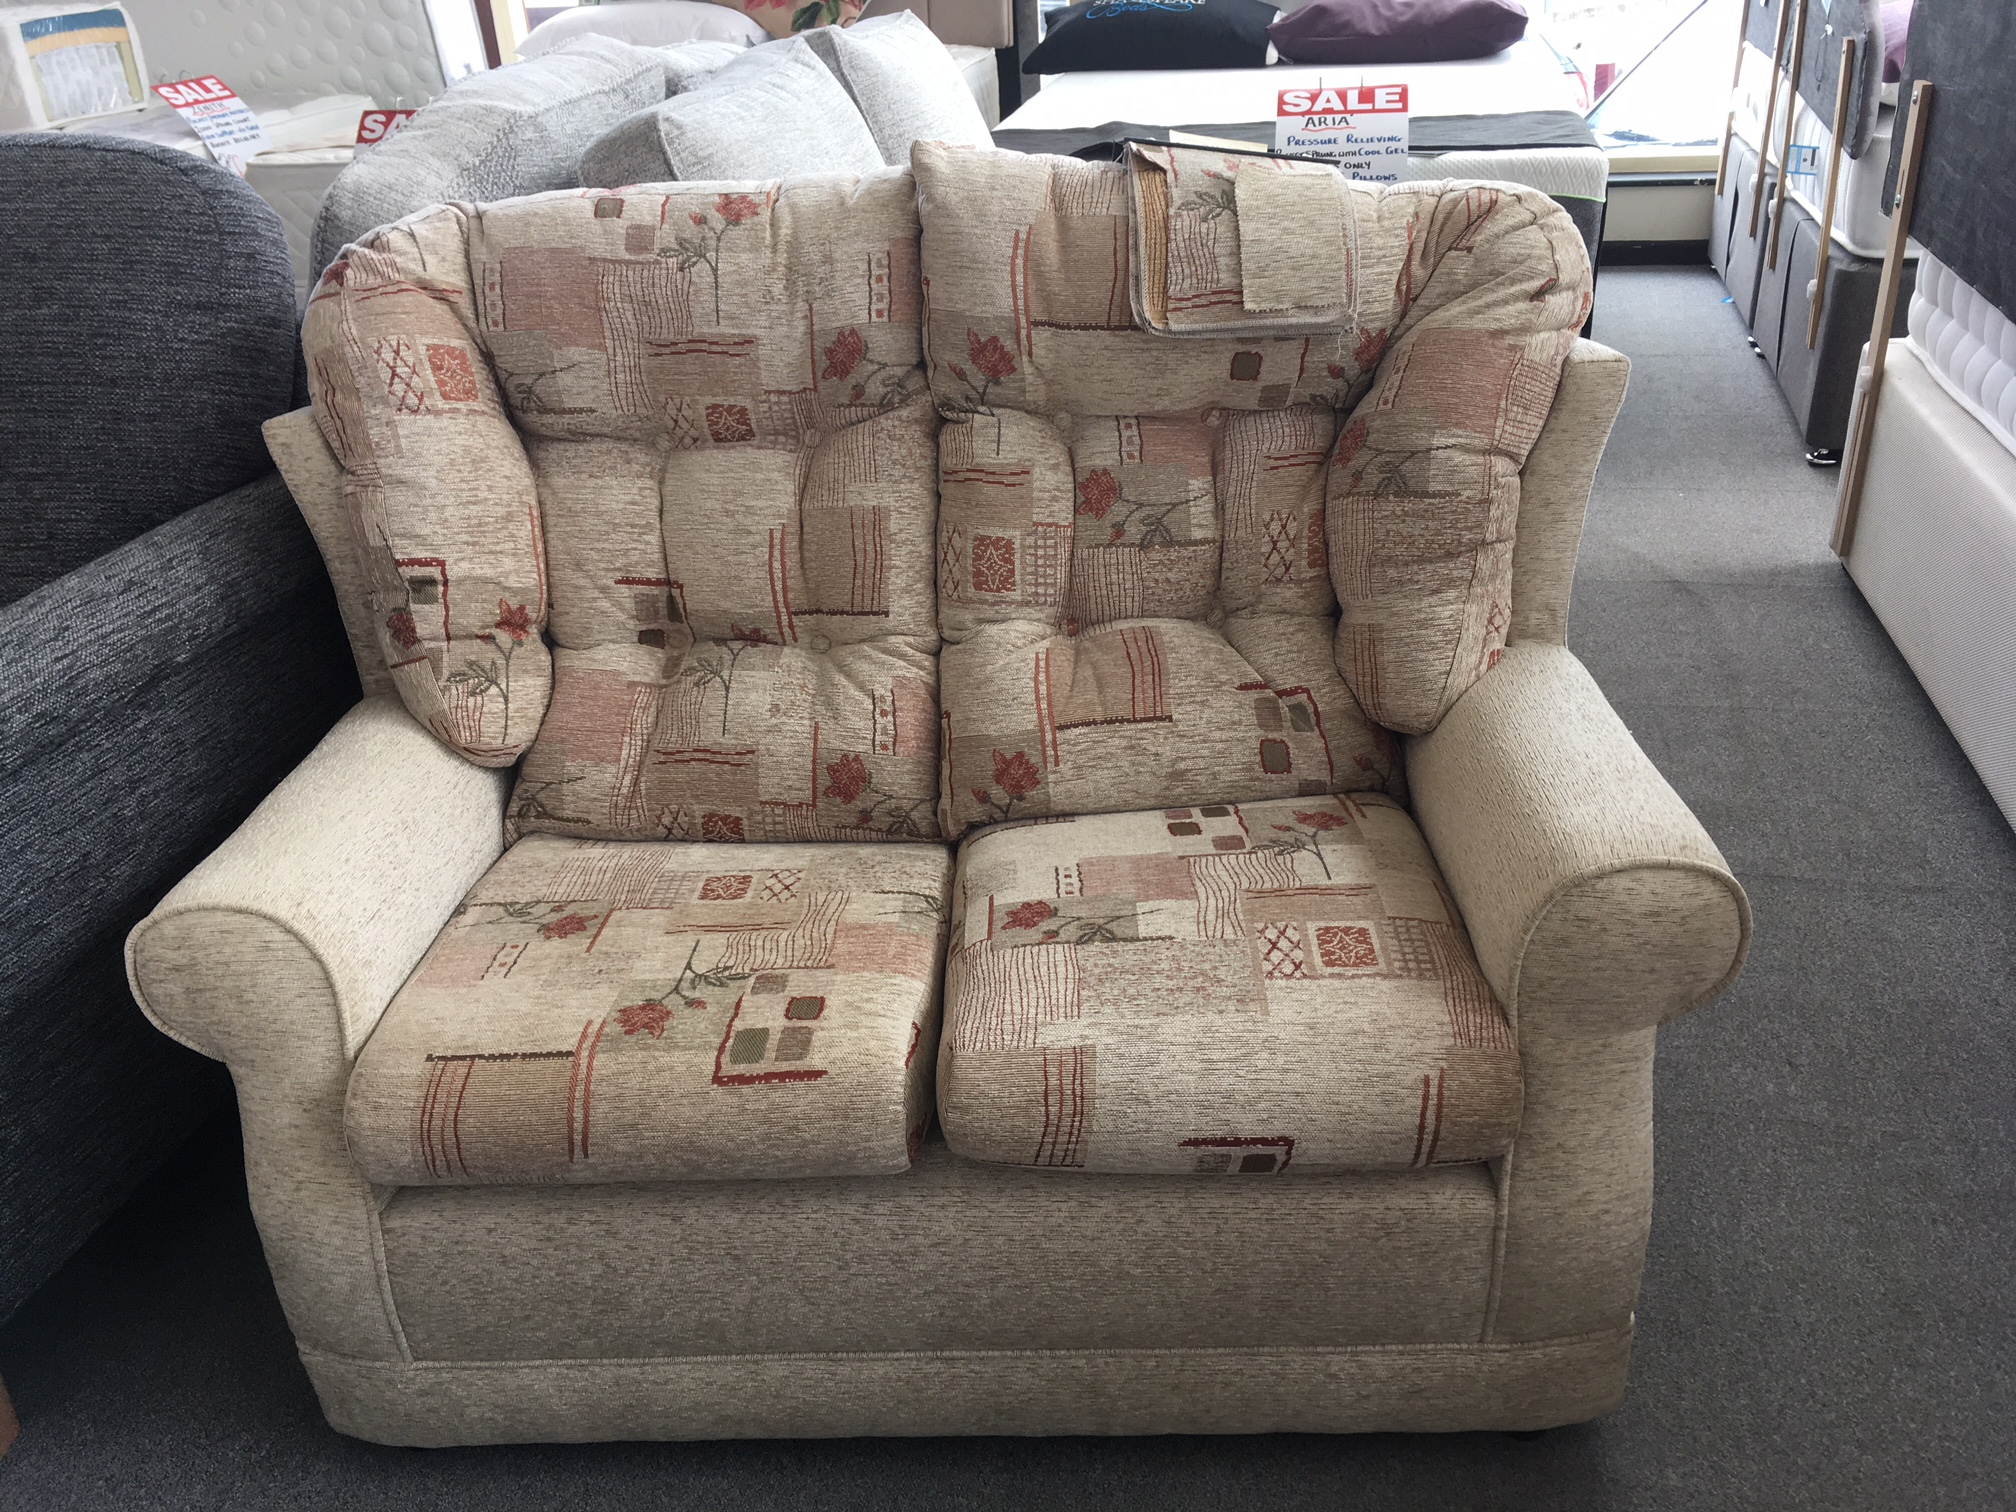 Windsor Two Seater Fabric Sofa    Was: £599.95   Sale 1/2 Price Offer : £299.95